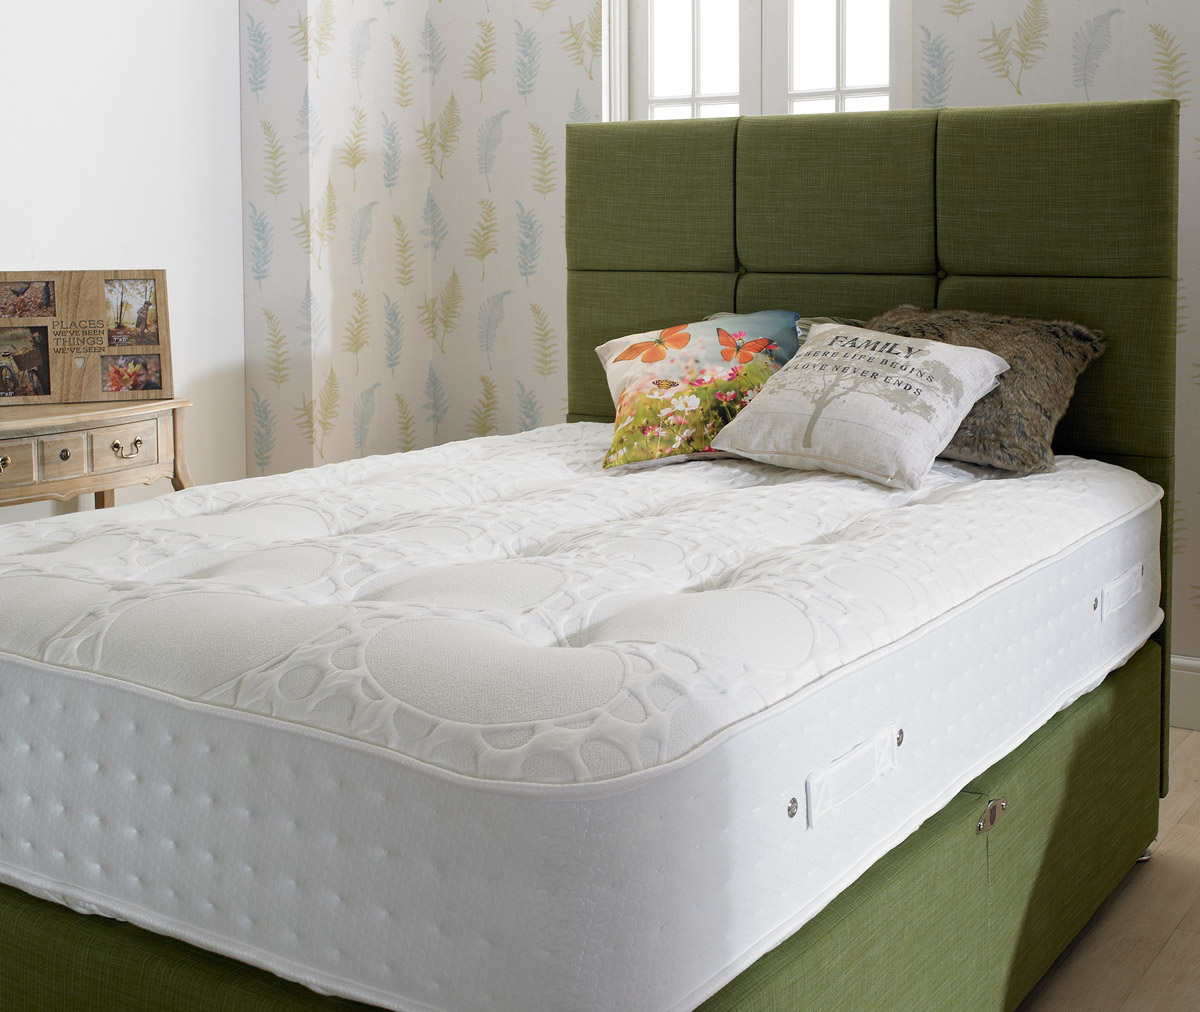 Shire Eco Grand Anti Bug 4000 Pocket Sprung Mattress from £499